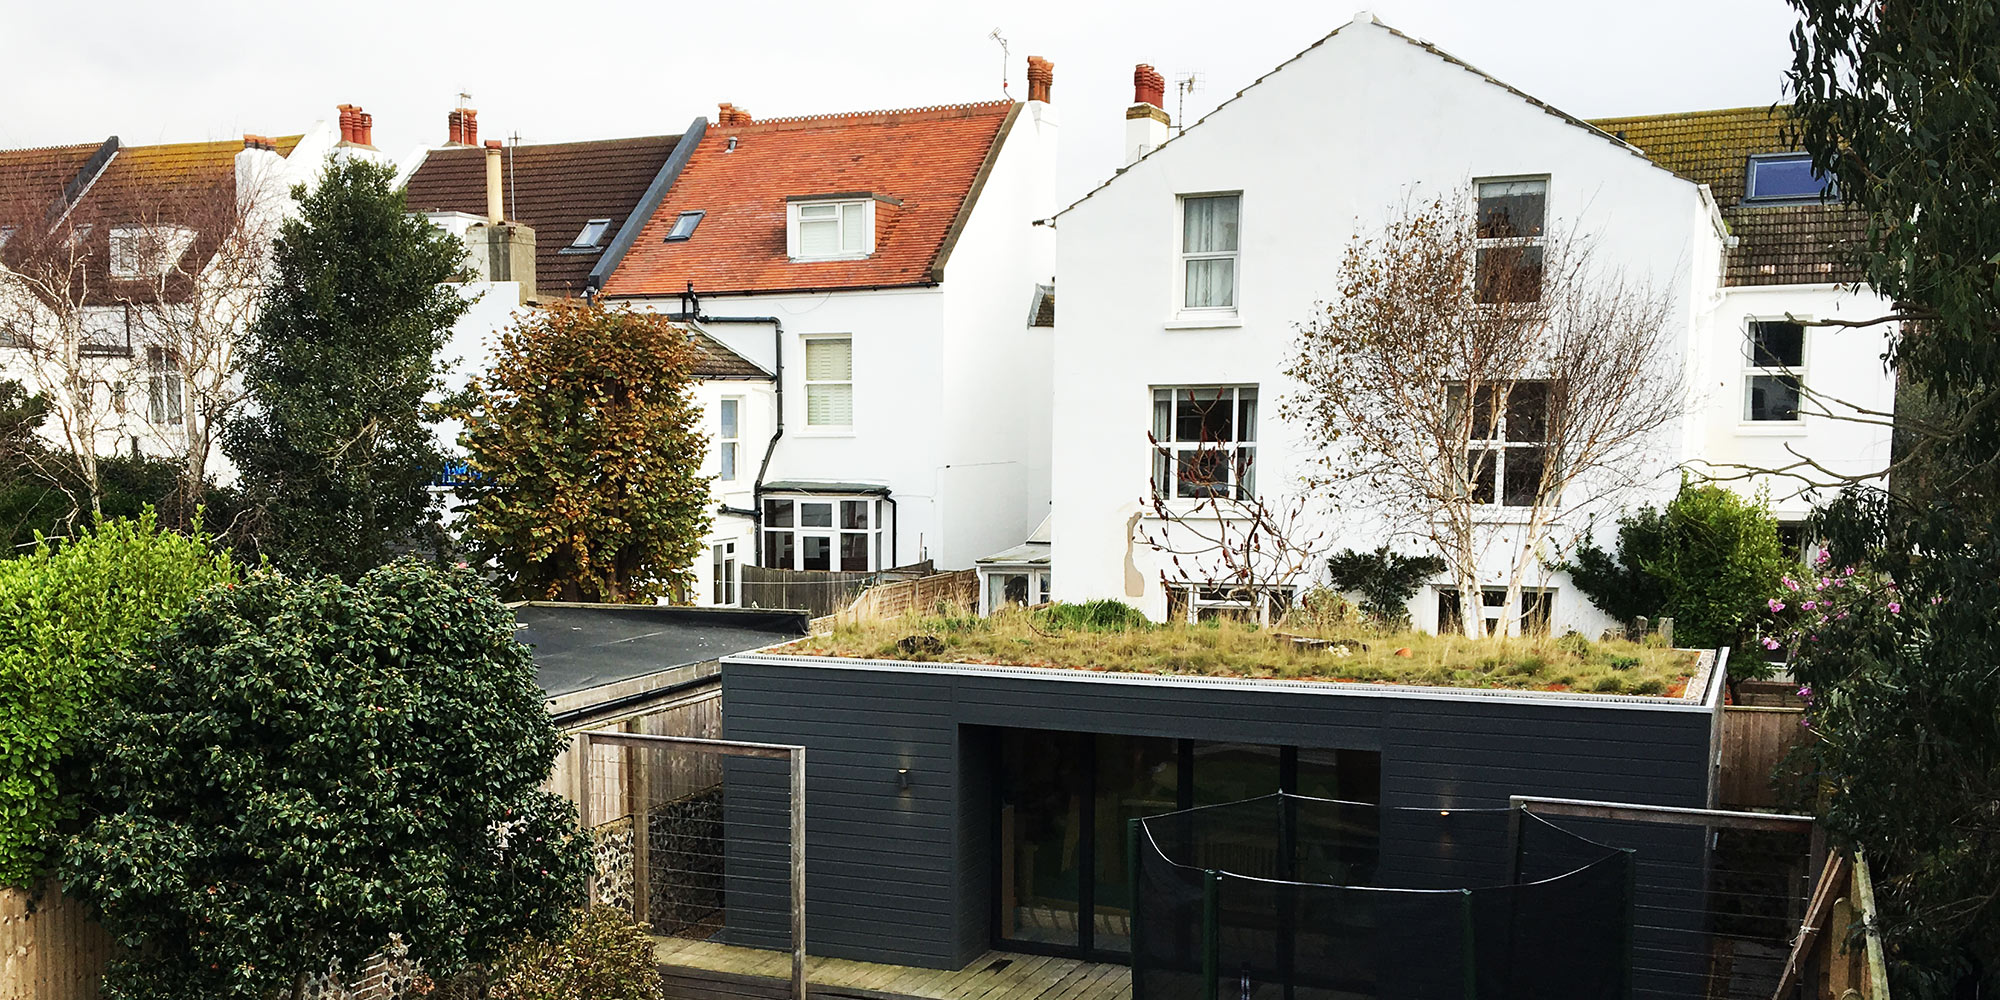 Green Roofs In Winter For Homes Pitched Roofs And Flat